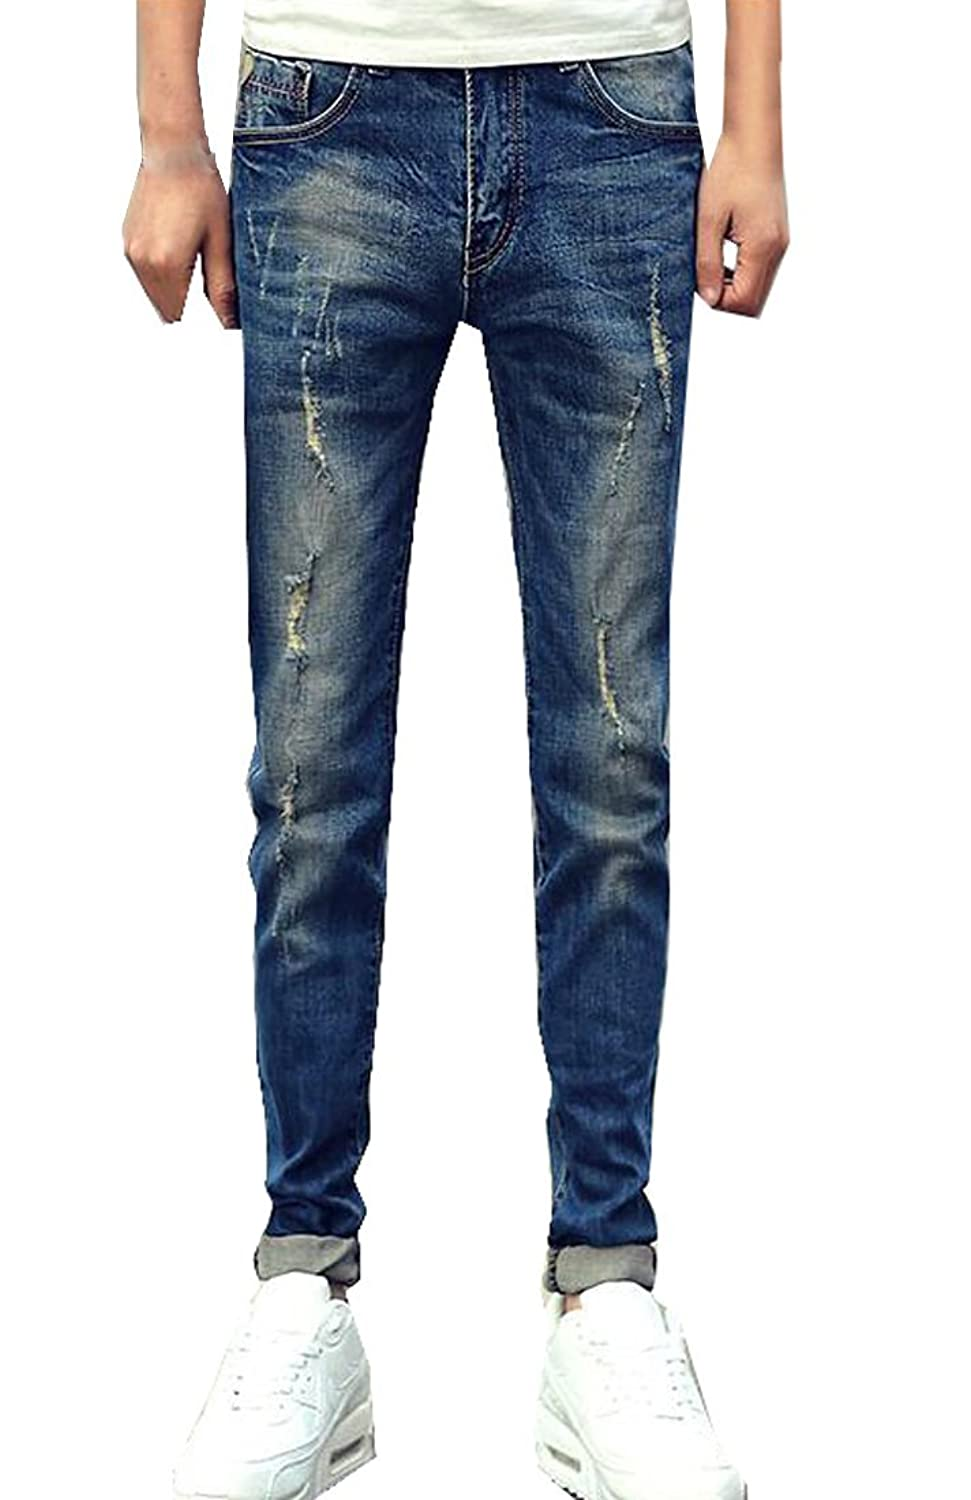 Vska Mens Fashion Casual Cotton Washed Ripped Denim Skinny Jeans